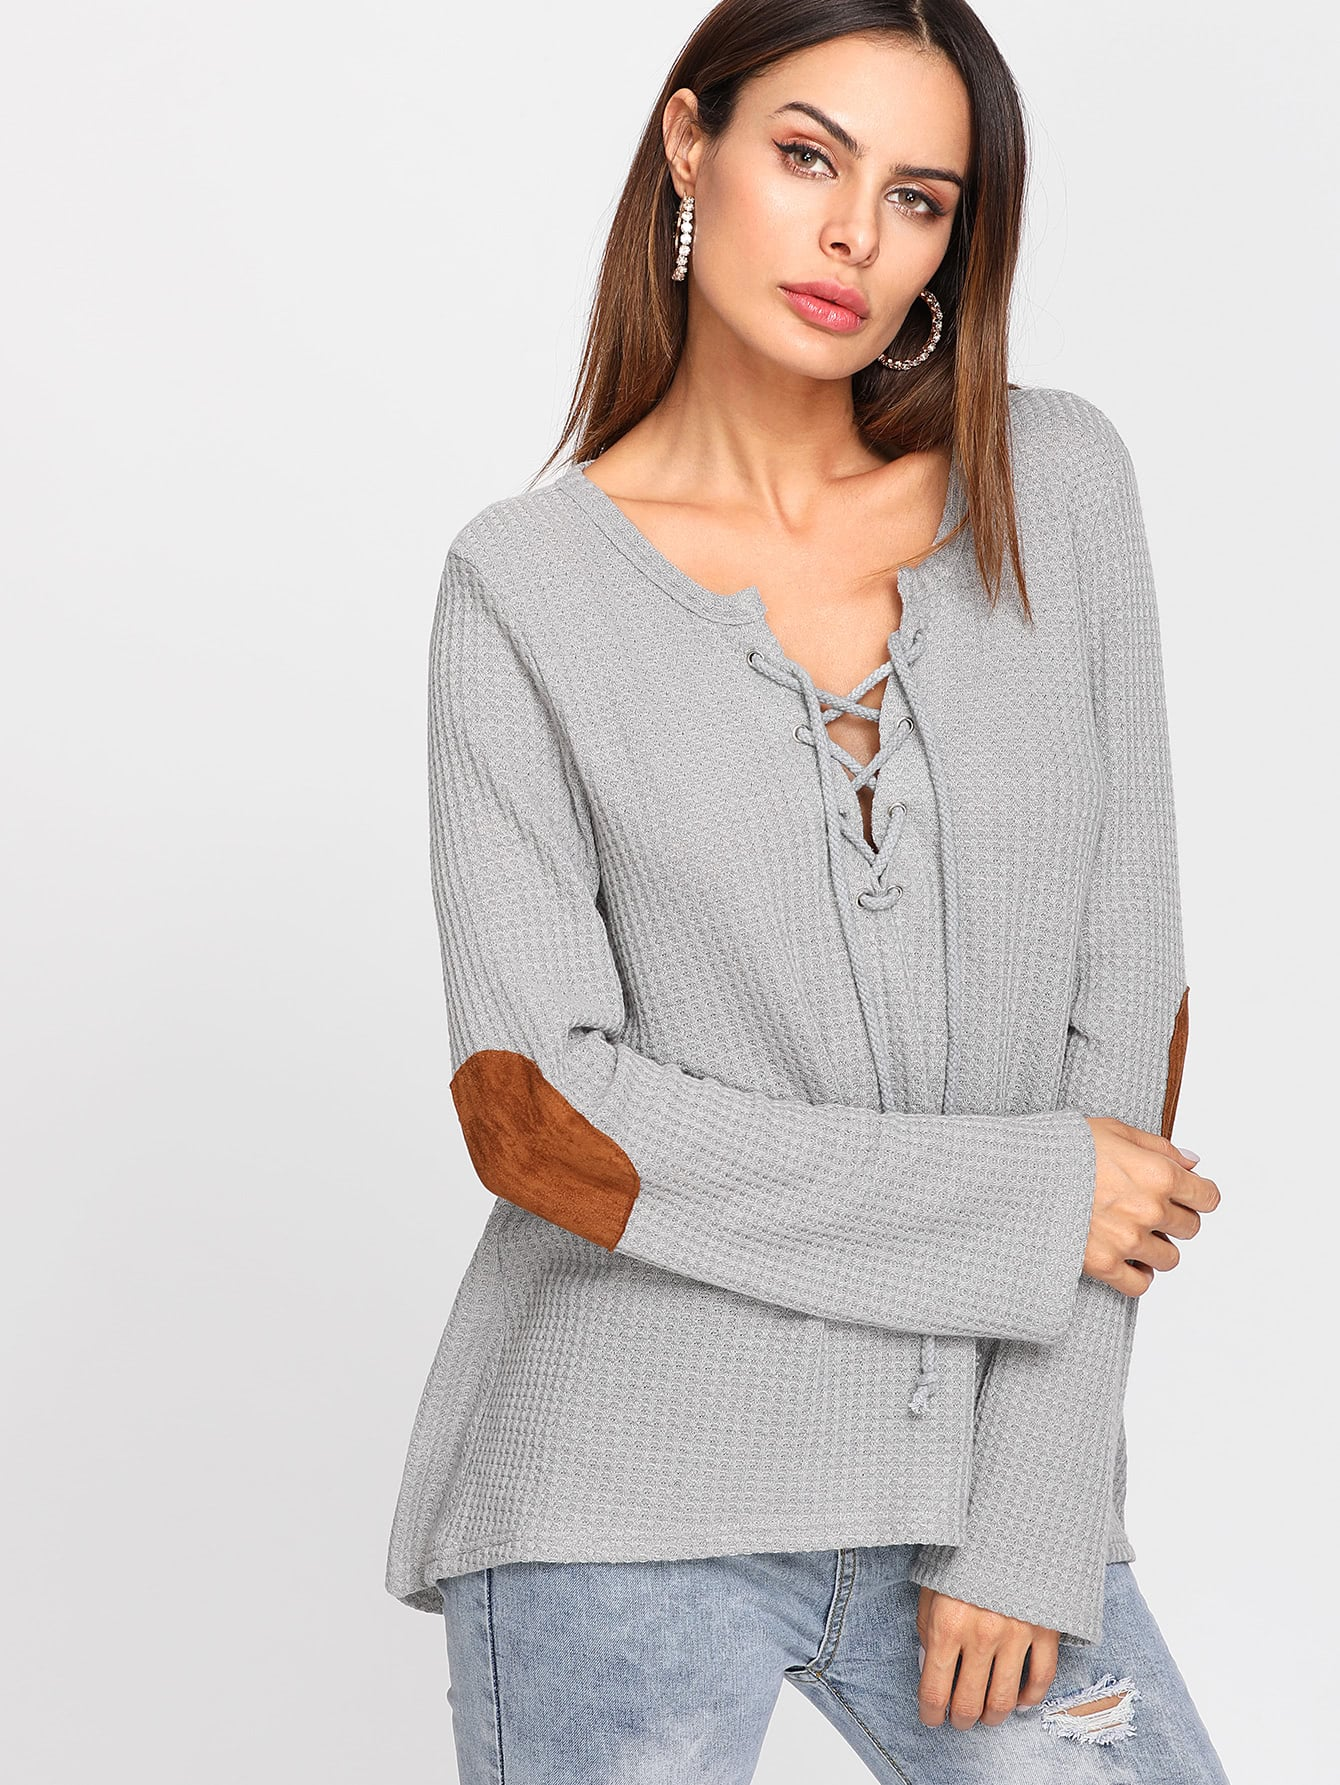 Lace Up Front Elbow Patched Top lace up front fit